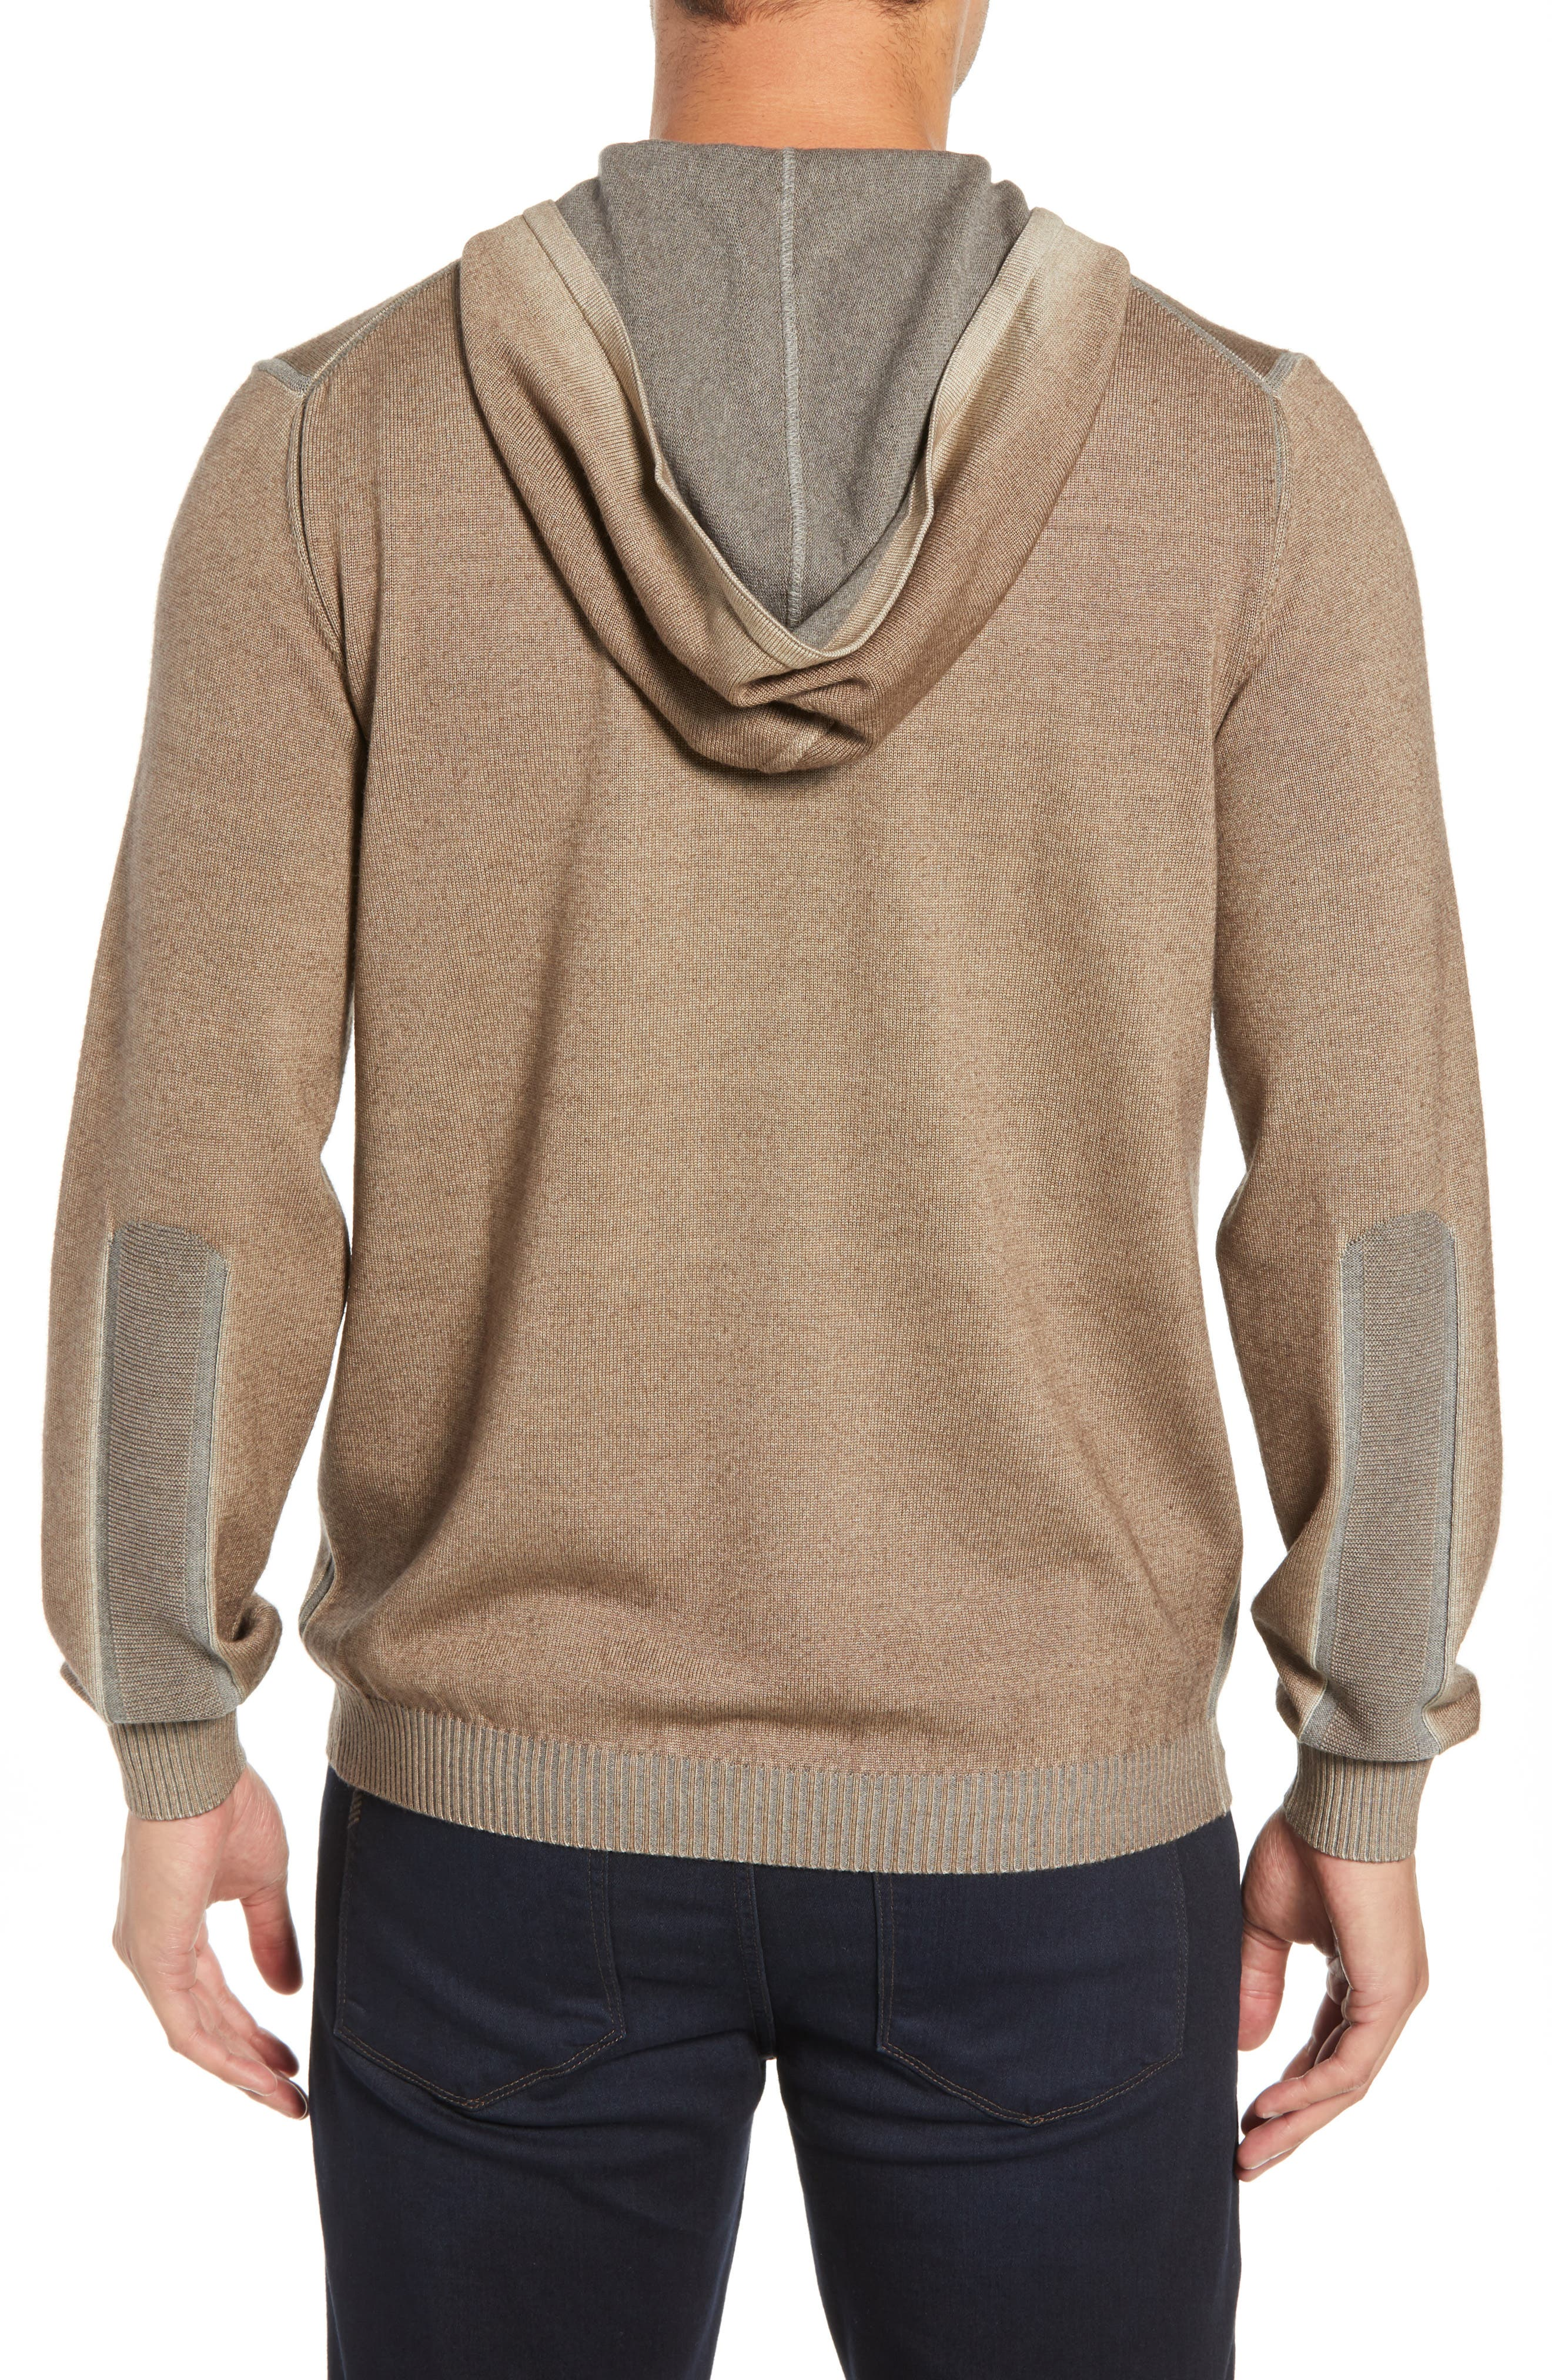 BUGATCHI,                             Hooded Pullover,                             Alternate thumbnail 2, color,                             SAND